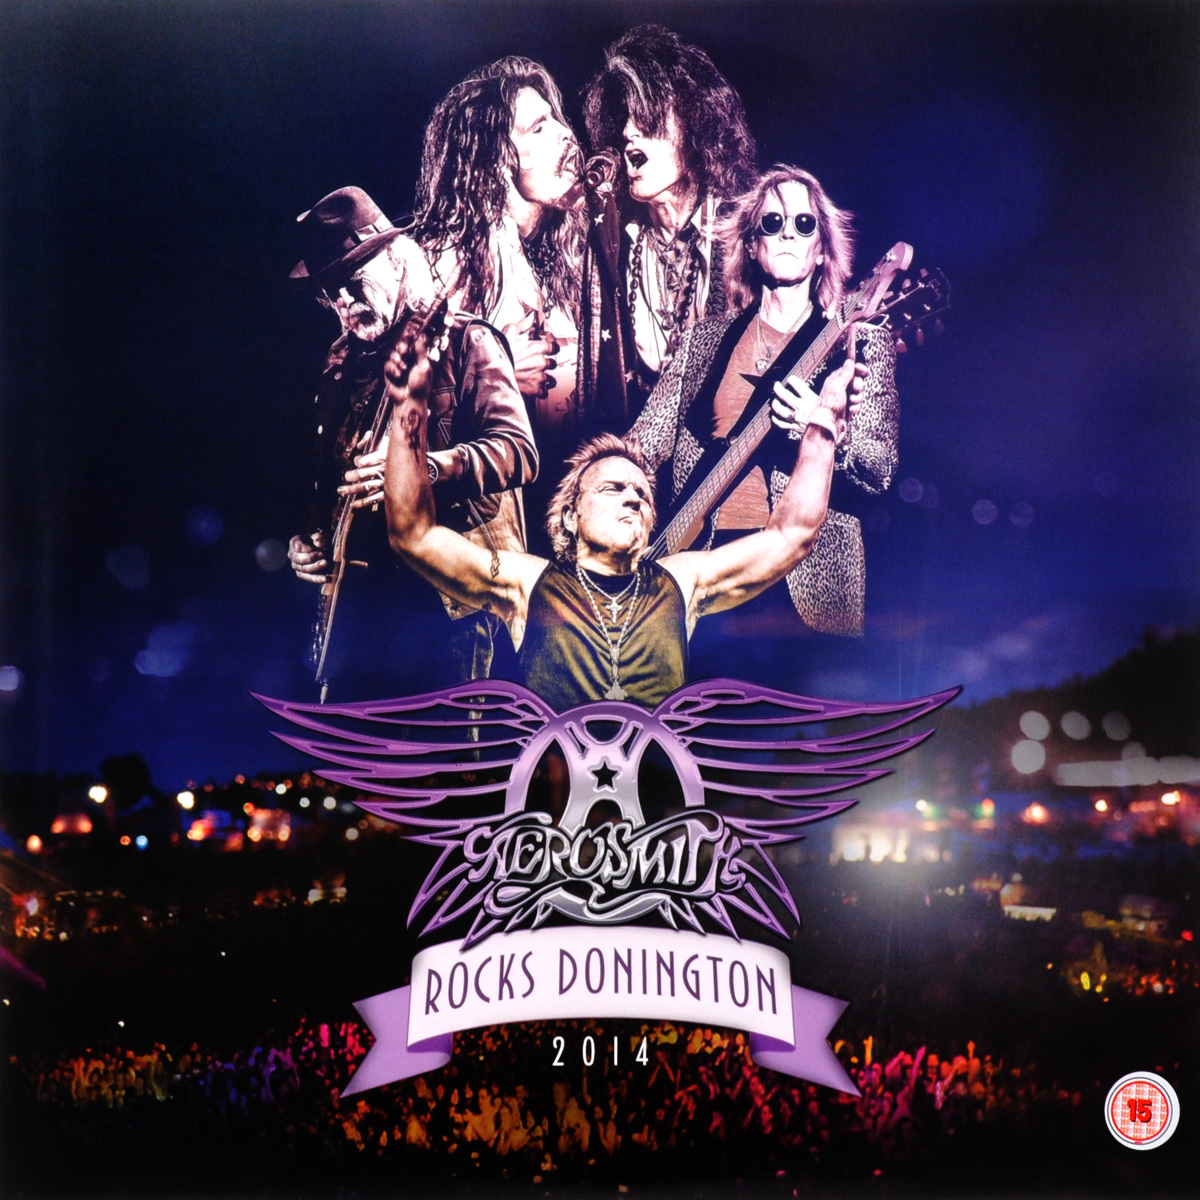 """Aerosmith"" Aerosmith. Rocks Donington 2014 (3 LP + DVD)"